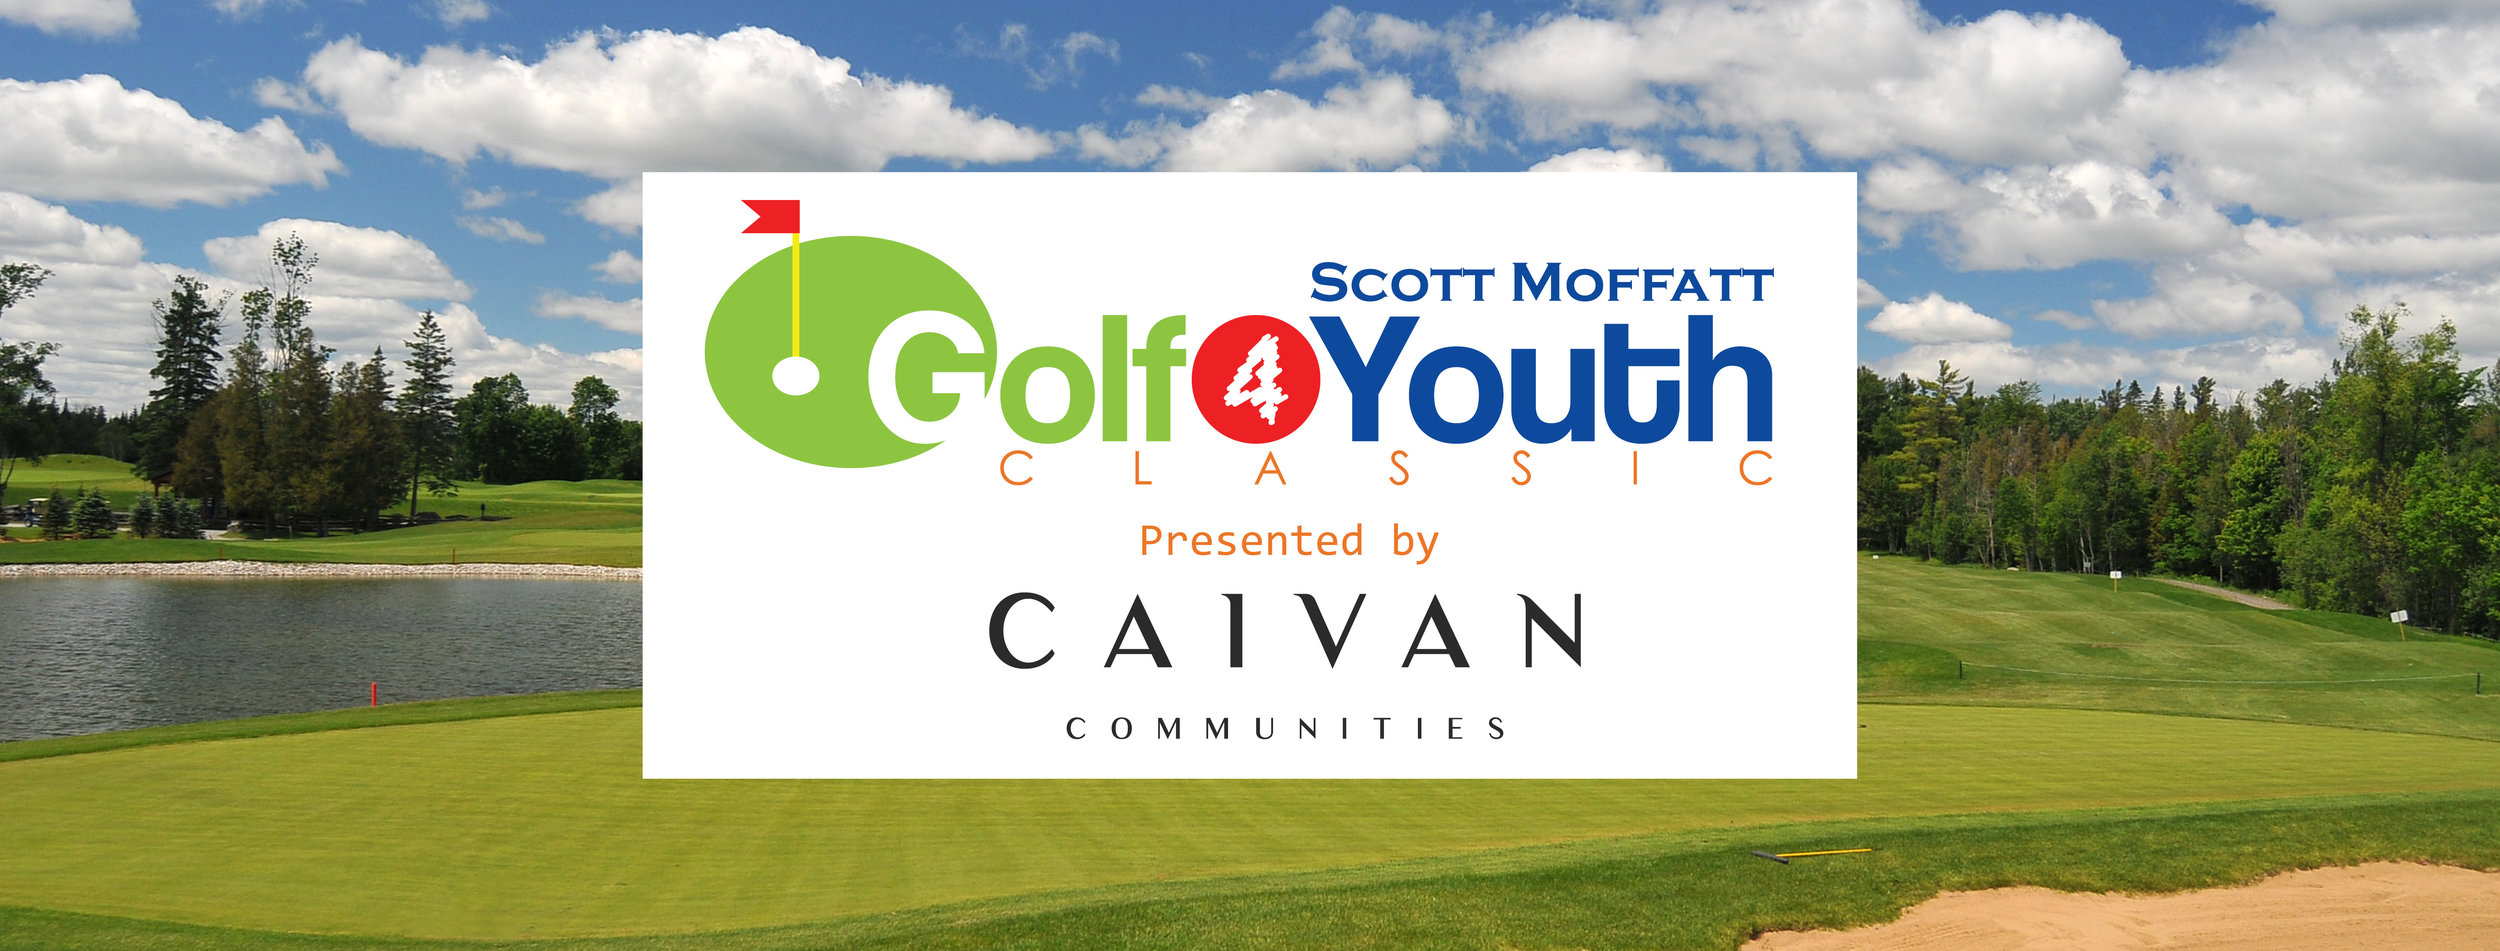 The Scott Moffatt Golf 4 Youth Classic is in one week and it is not too late to register to play! Register today to help support the Youth of Manotick Association and the Richmond Youth Centre:   https://www.golf4youth.ca/ .